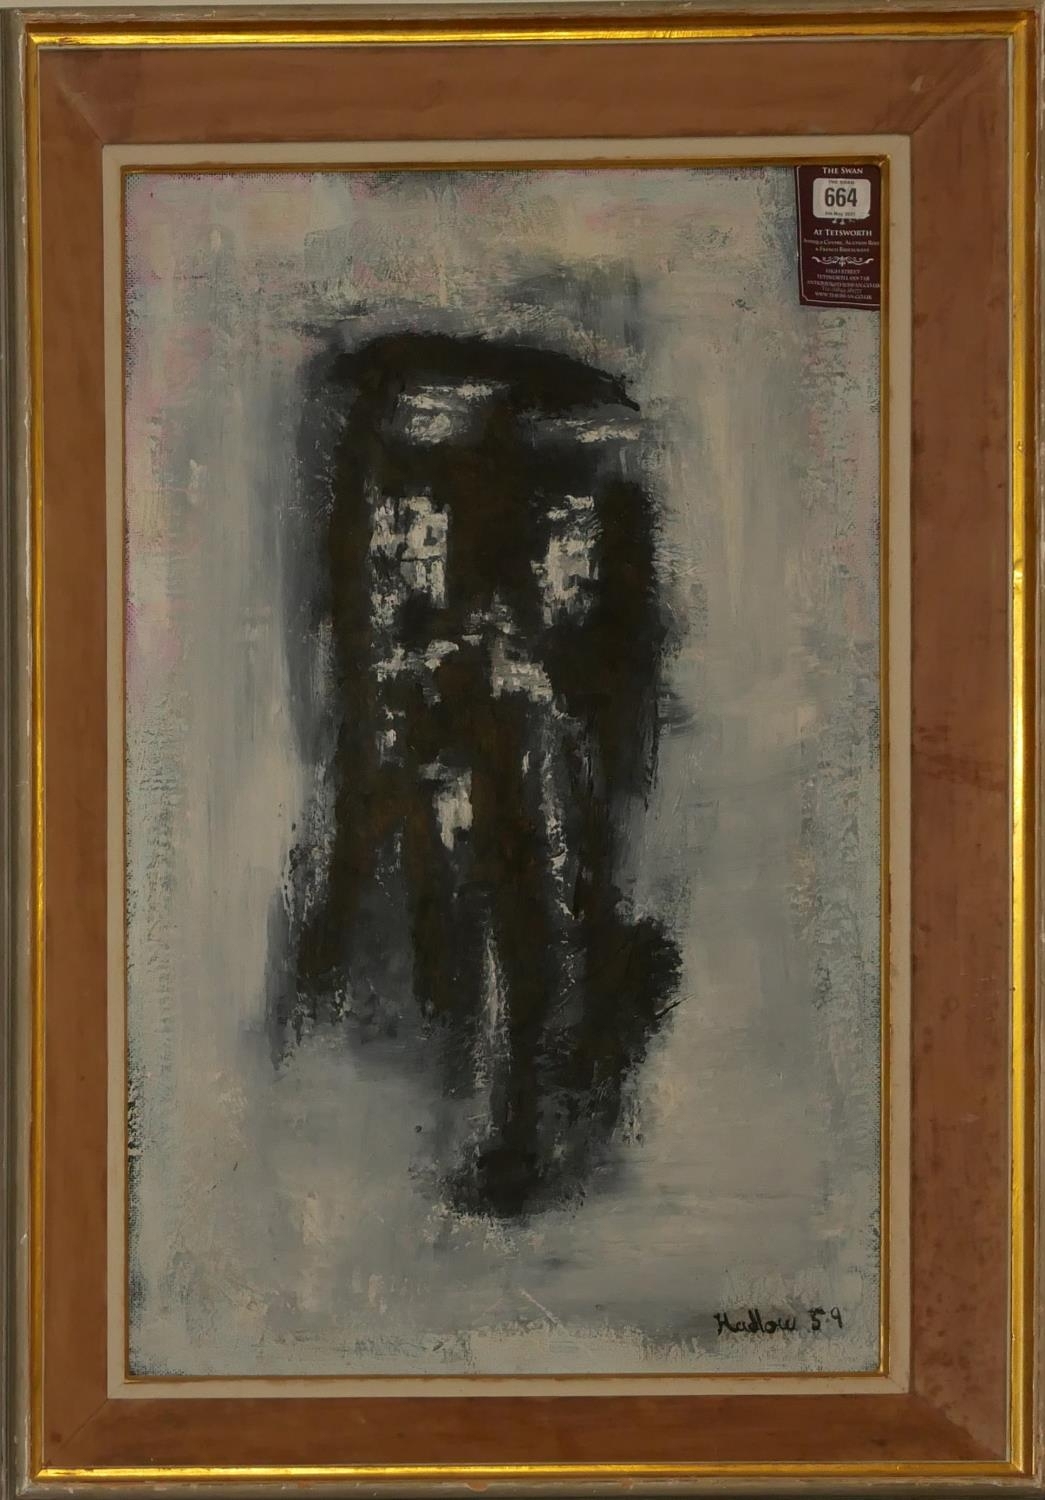 HADLOW, A MID 20TH CENTURY OIL ON BOARD ABSTRACT Shadowy figure, signed lower right, dated 1959, - Image 2 of 2